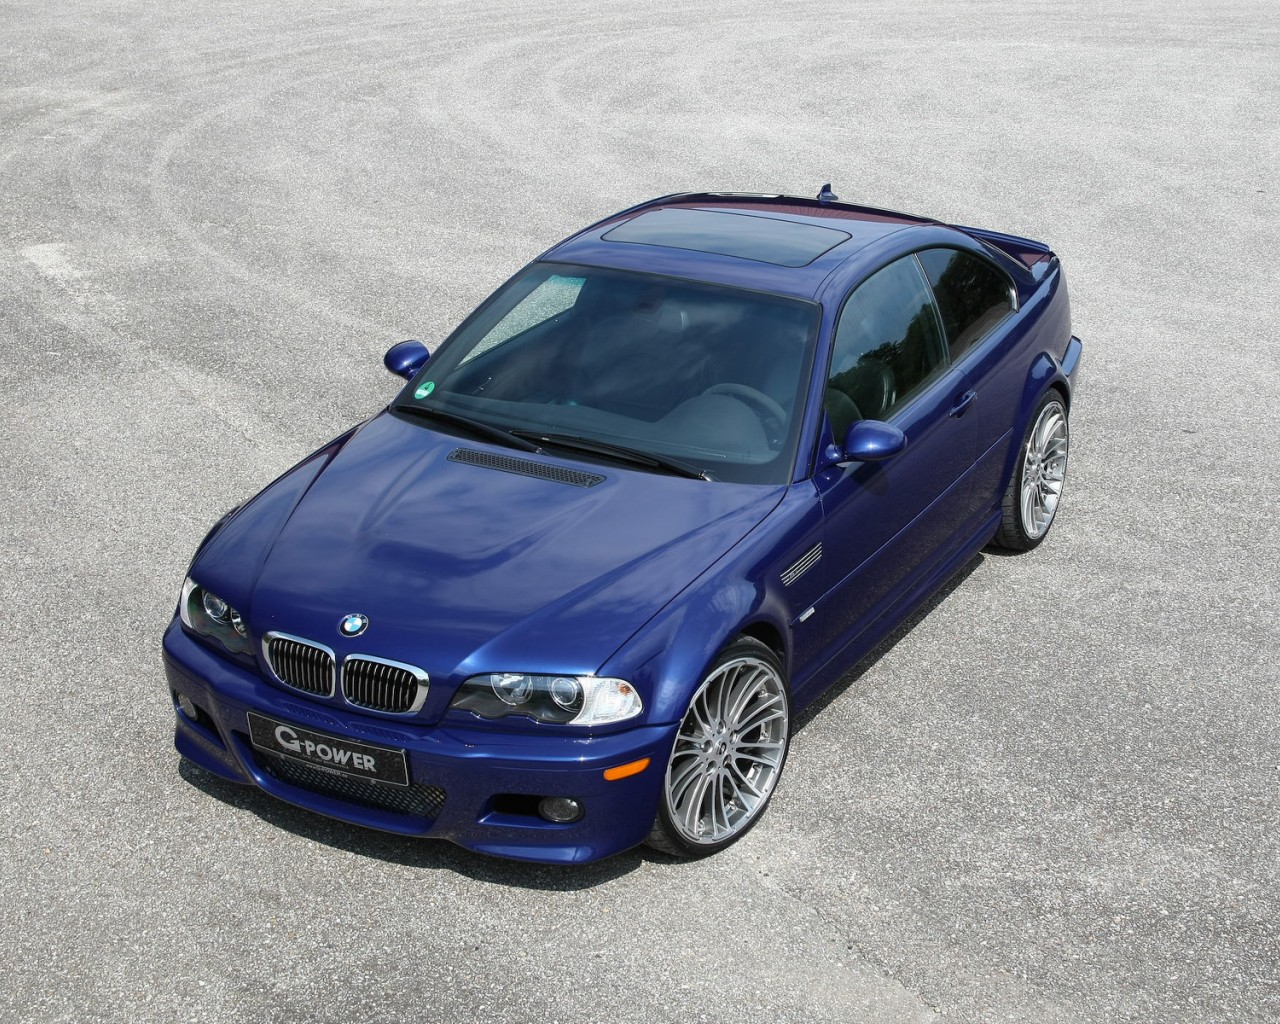 g-power-bmw-m3-e46-03.jpg